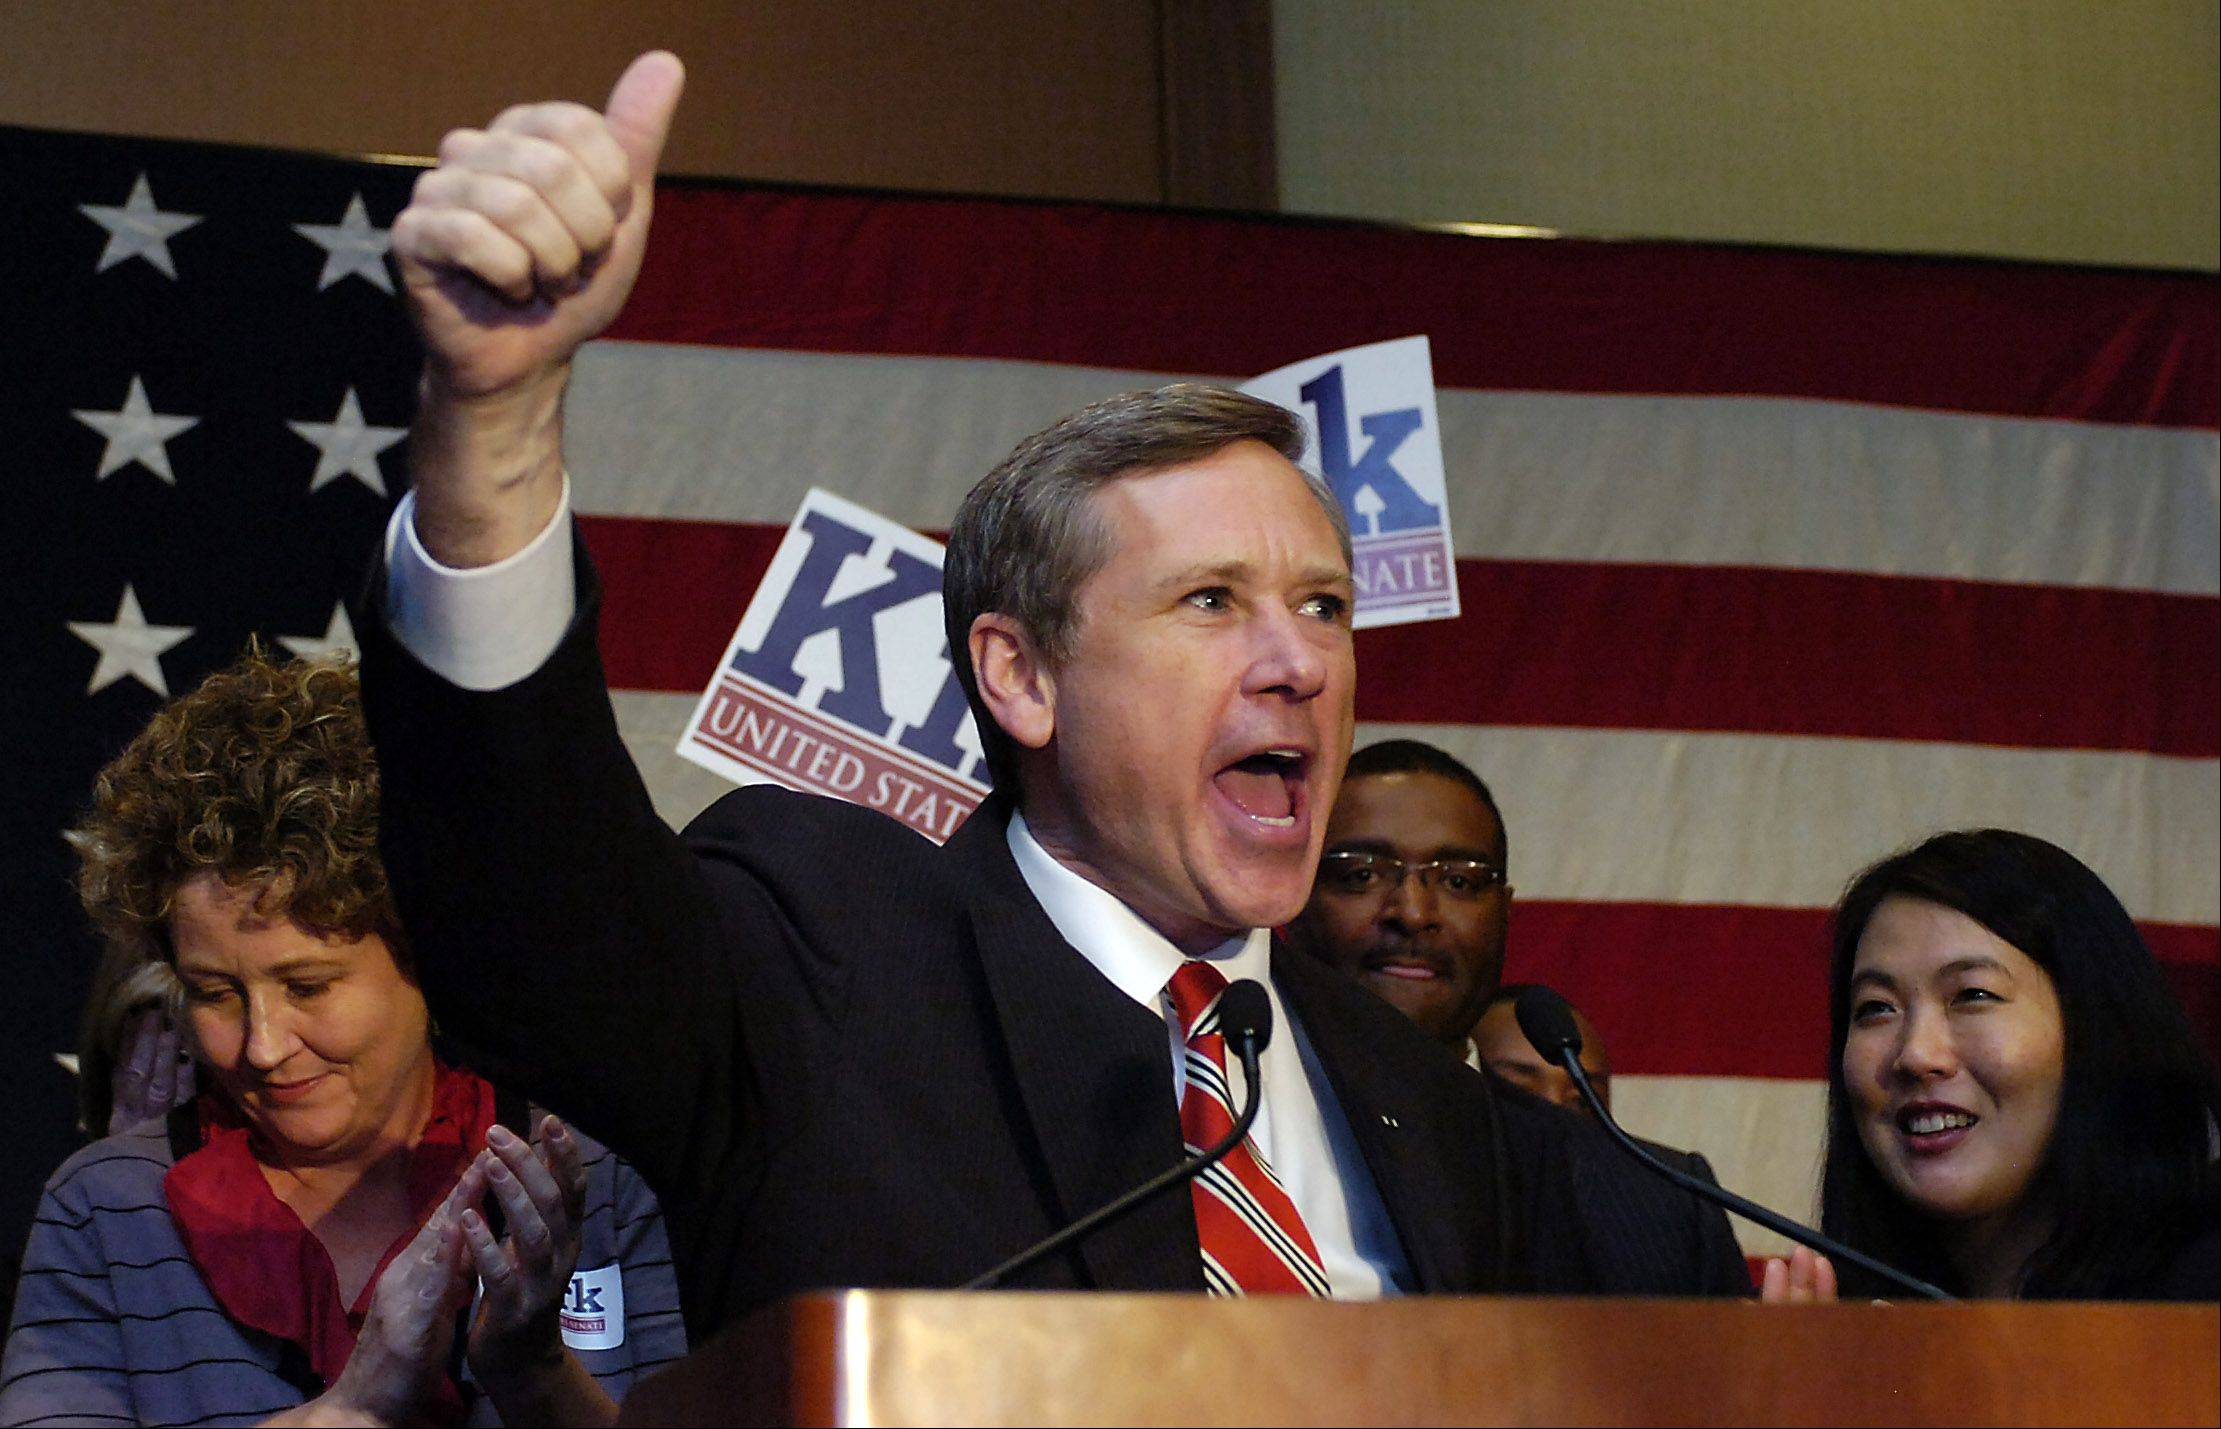 Senator Mark Kirk talks to his supporters.